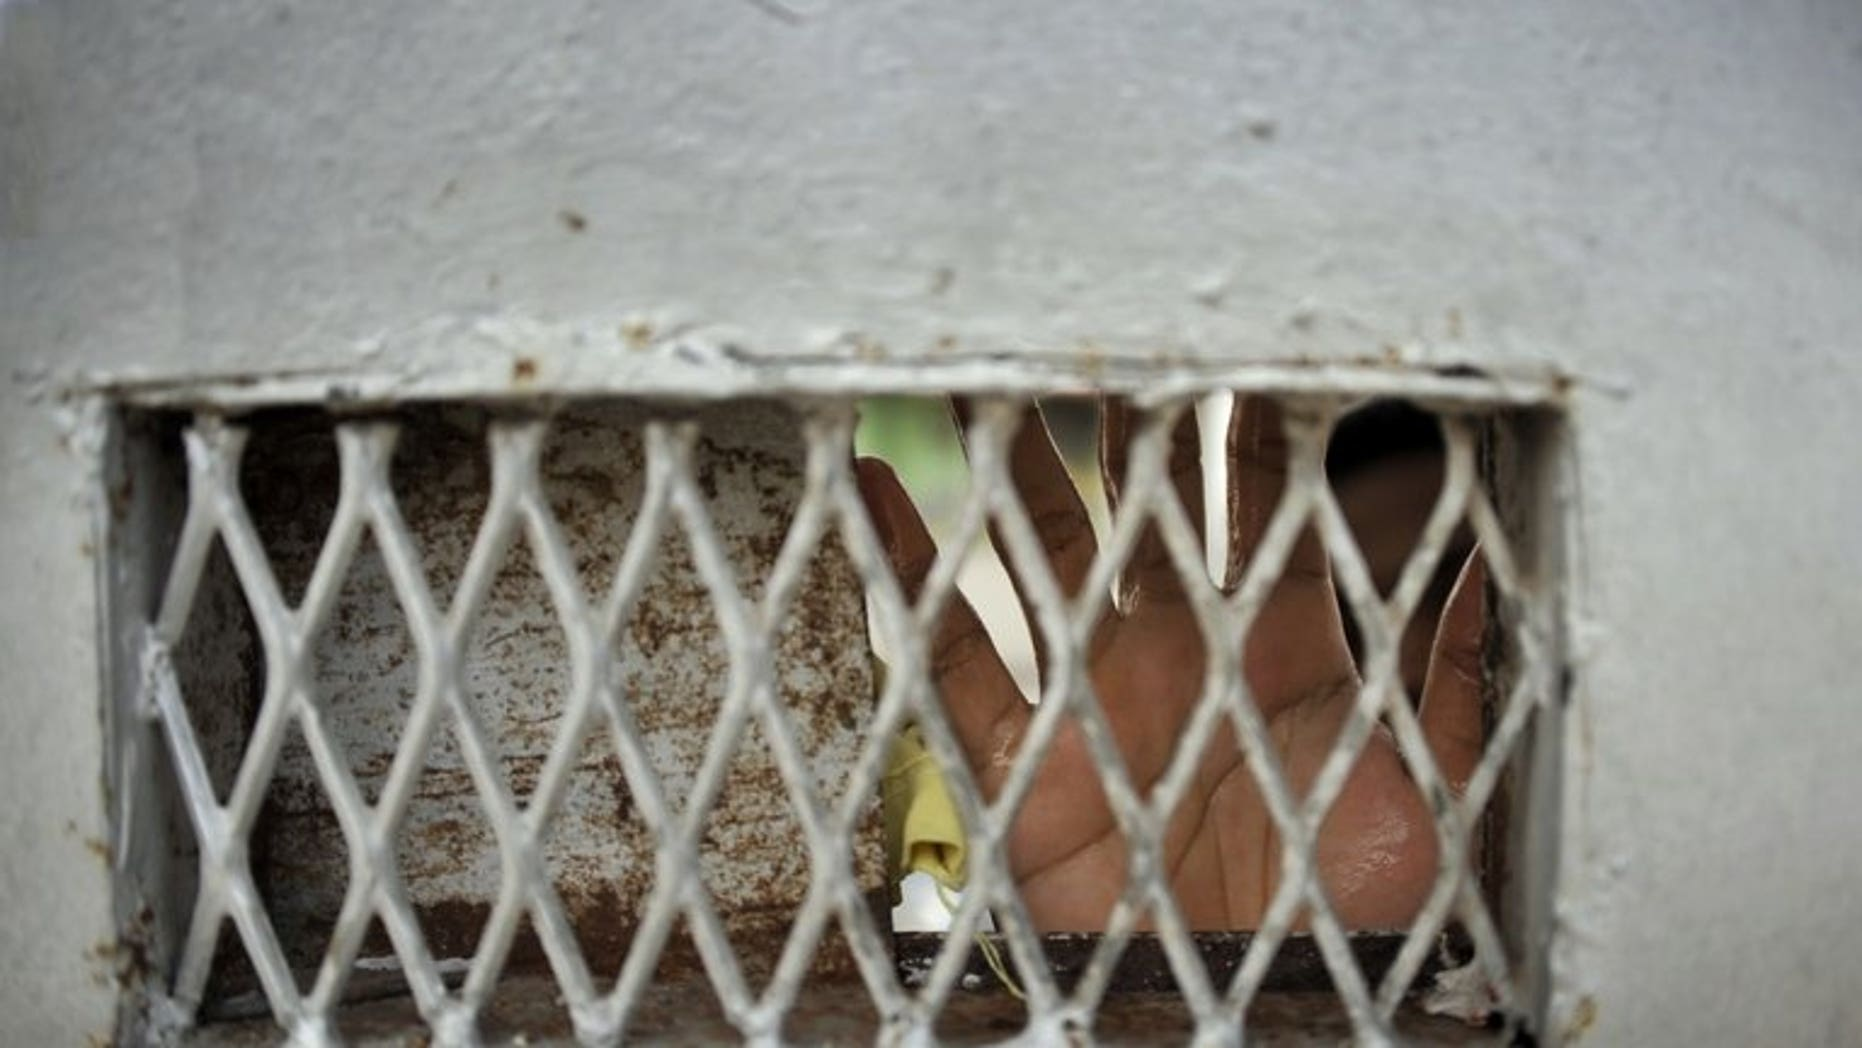 In this photograph taken on February 25, 2012, a prisoner's hands cover the window of an iron door of Kerobokan prison on Bali. About 30 prisoners escaped from an overcrowded jail on Indonesia's Sumatra island on Sunday after riots broke out, officials said.